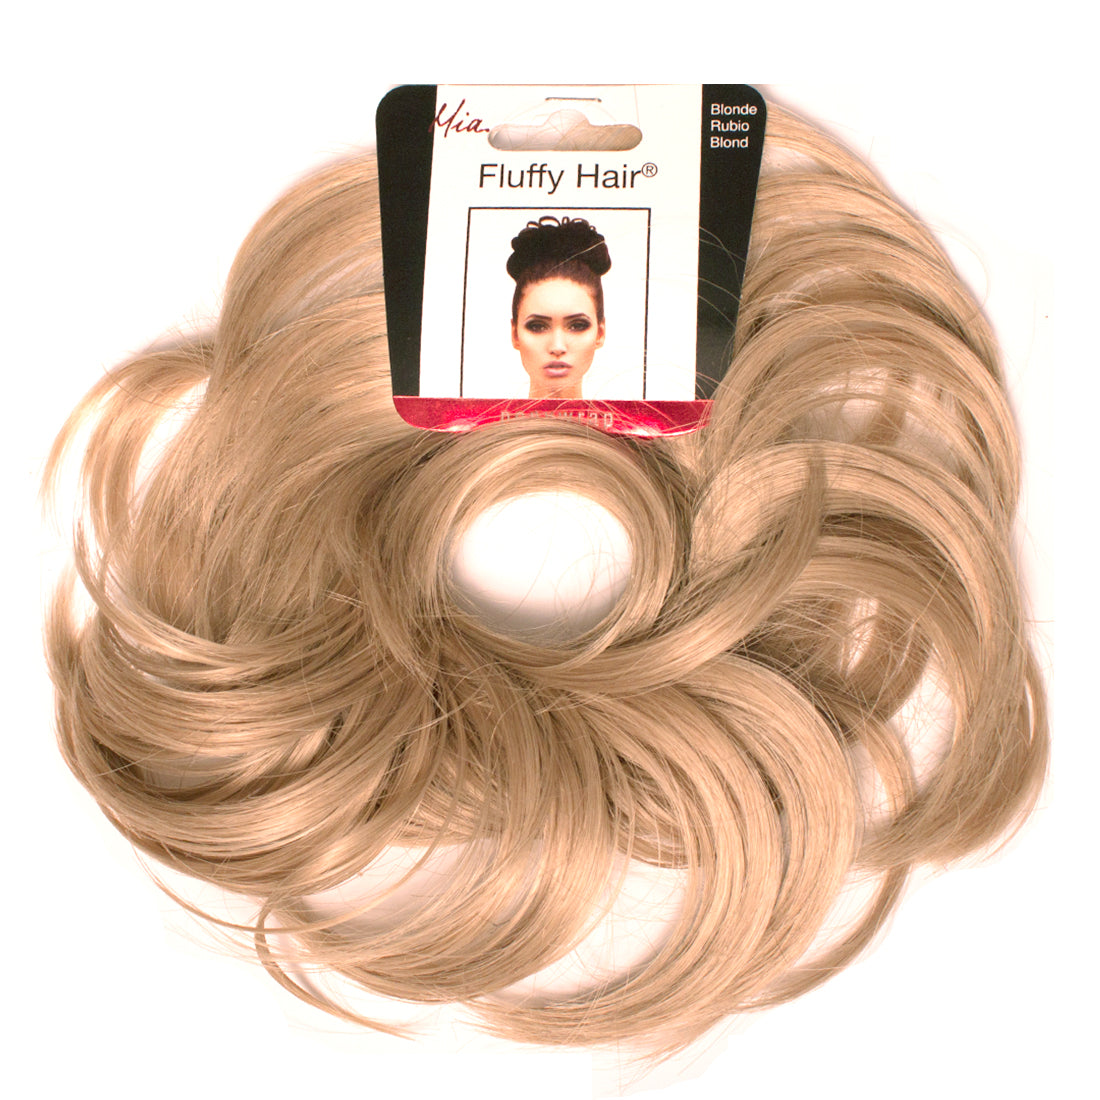 Mia® Fluffy Hair Ponywrap on packaging - blonde color